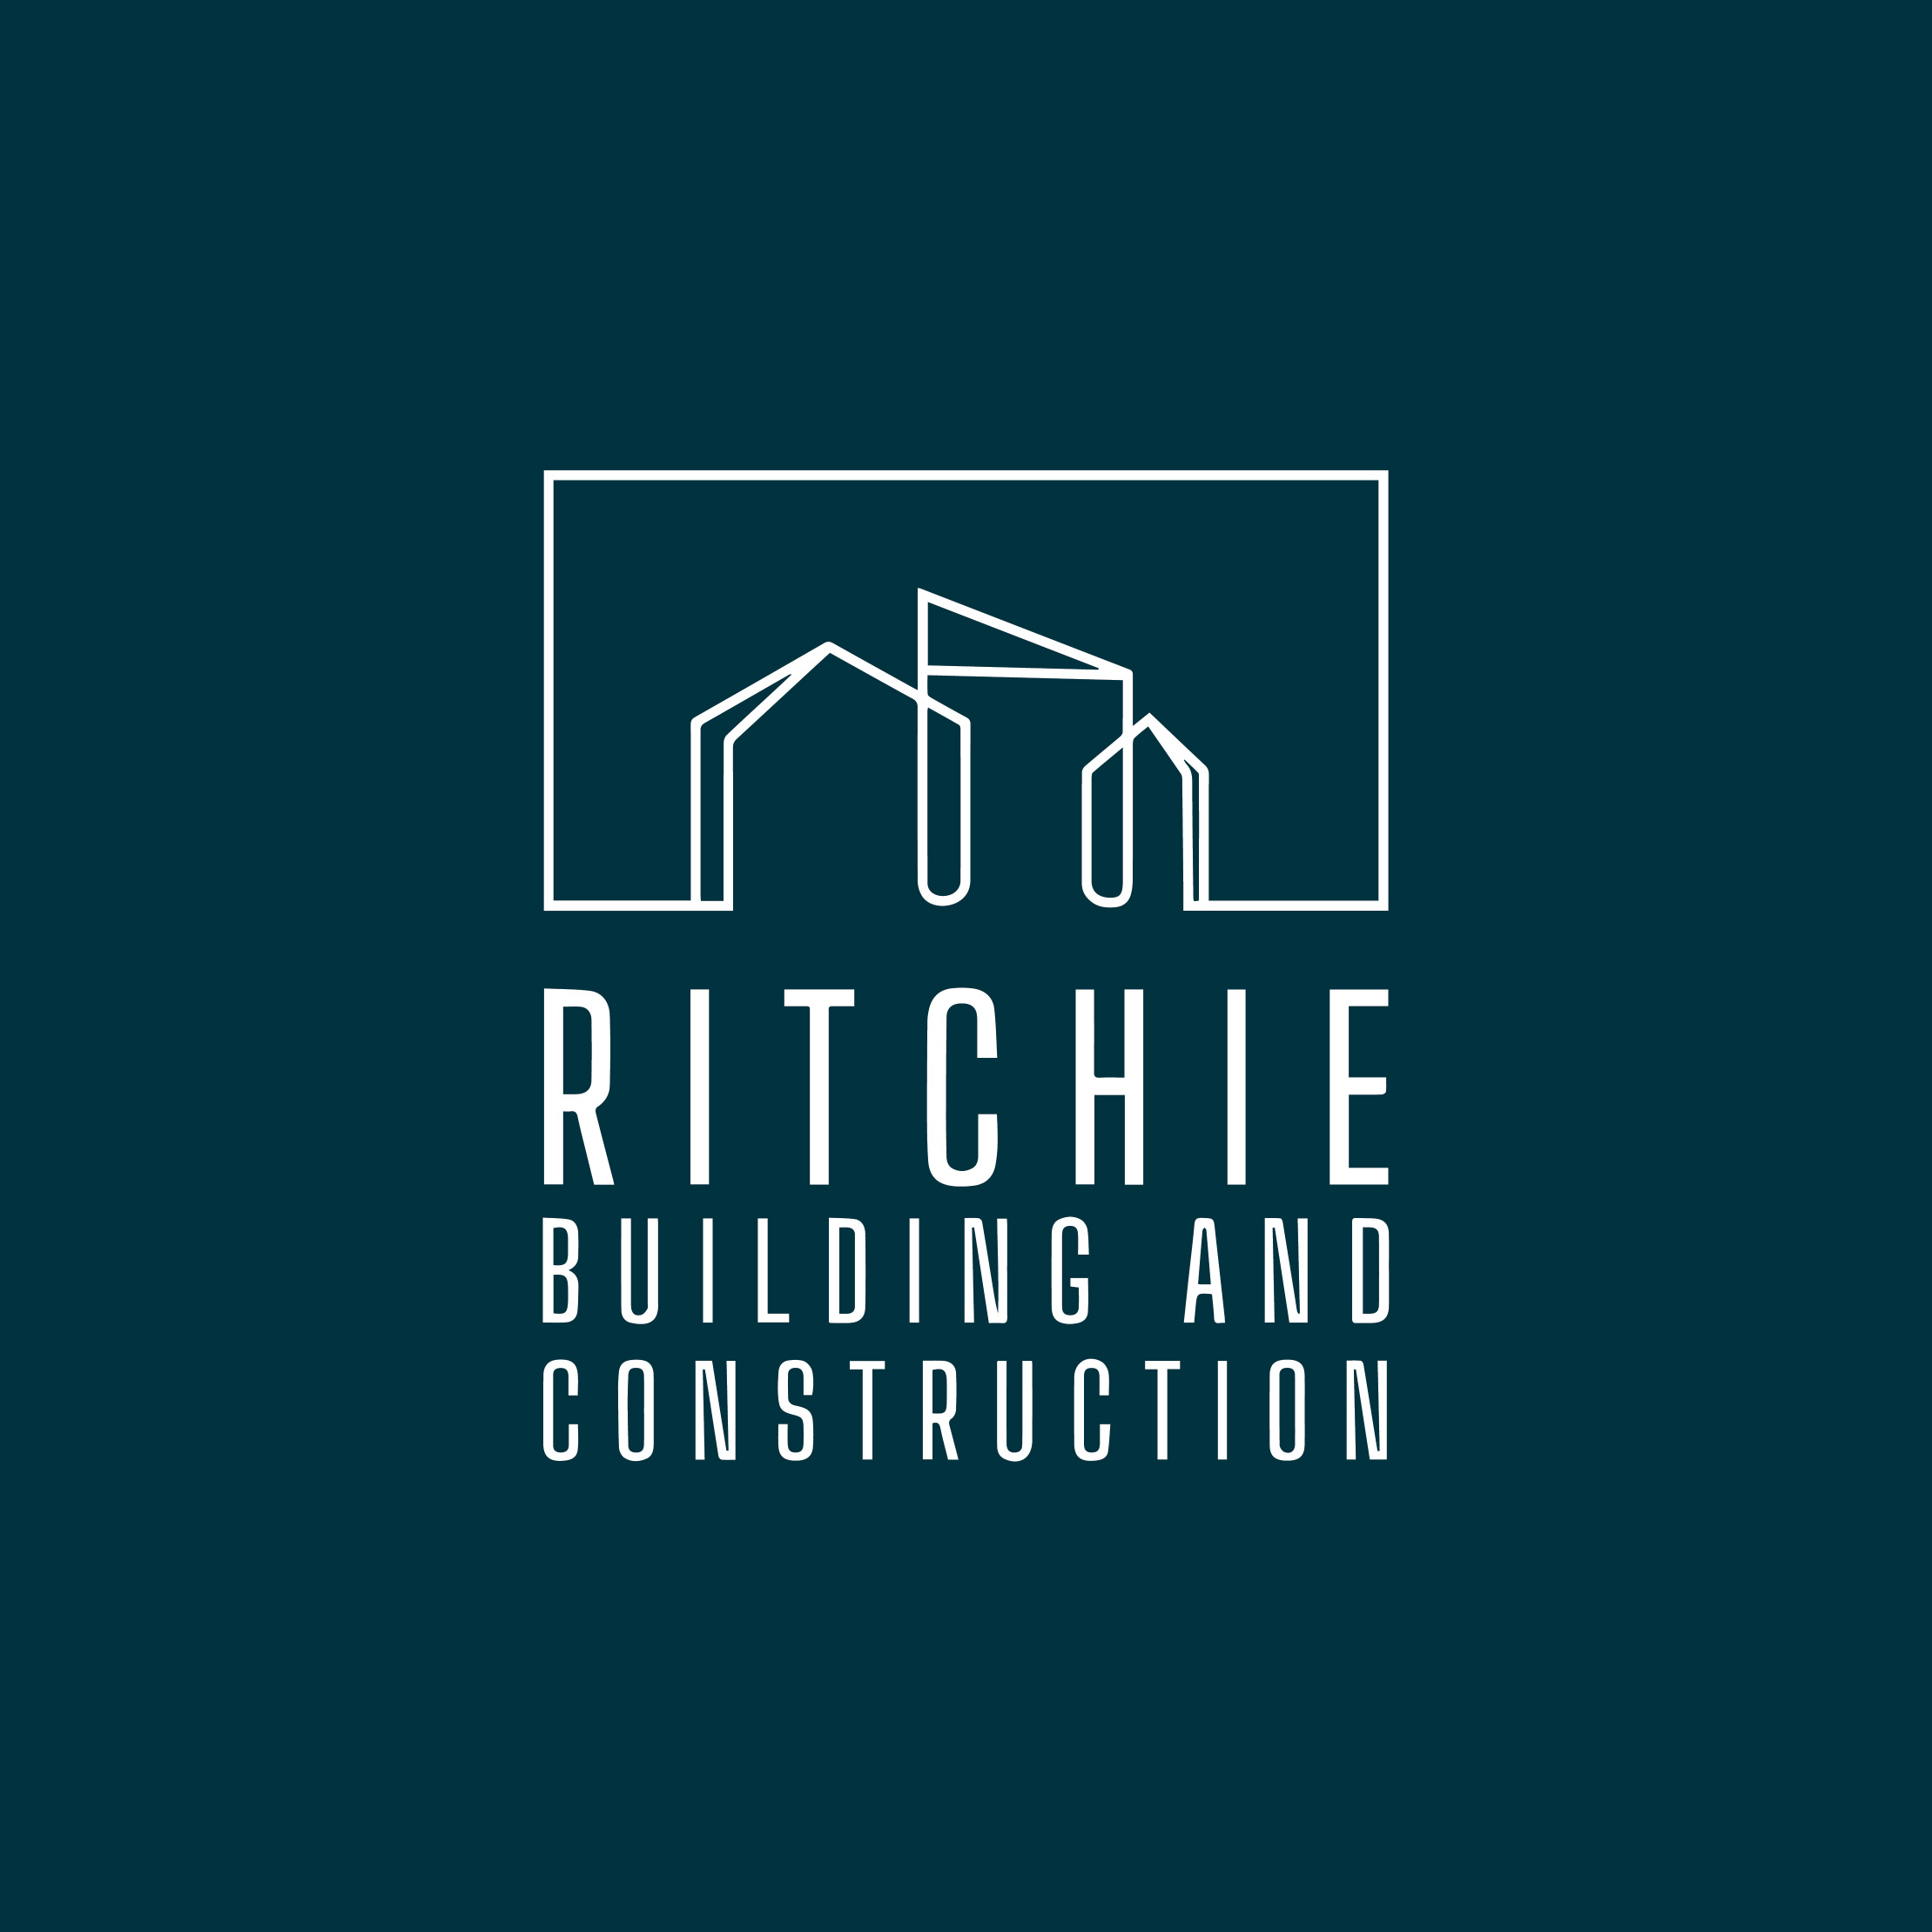 Ritchie Building and Construction